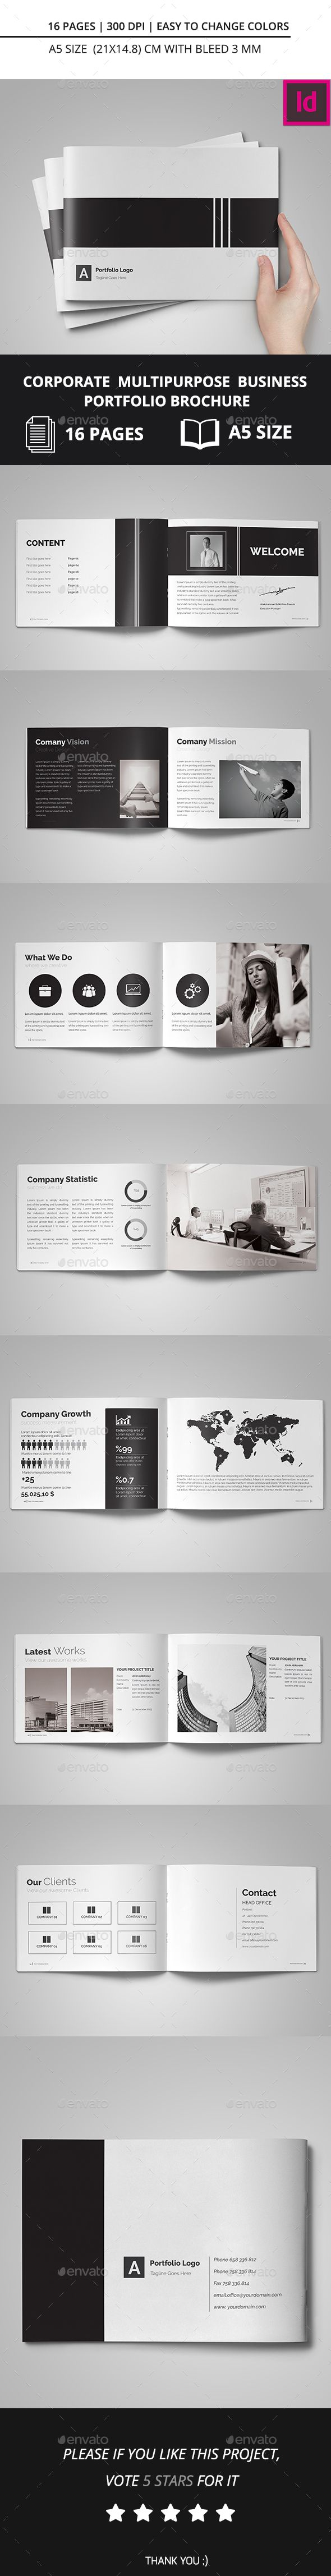 Corporate Multipurpose Business Portfolio Brochure Template InDesign INDD…